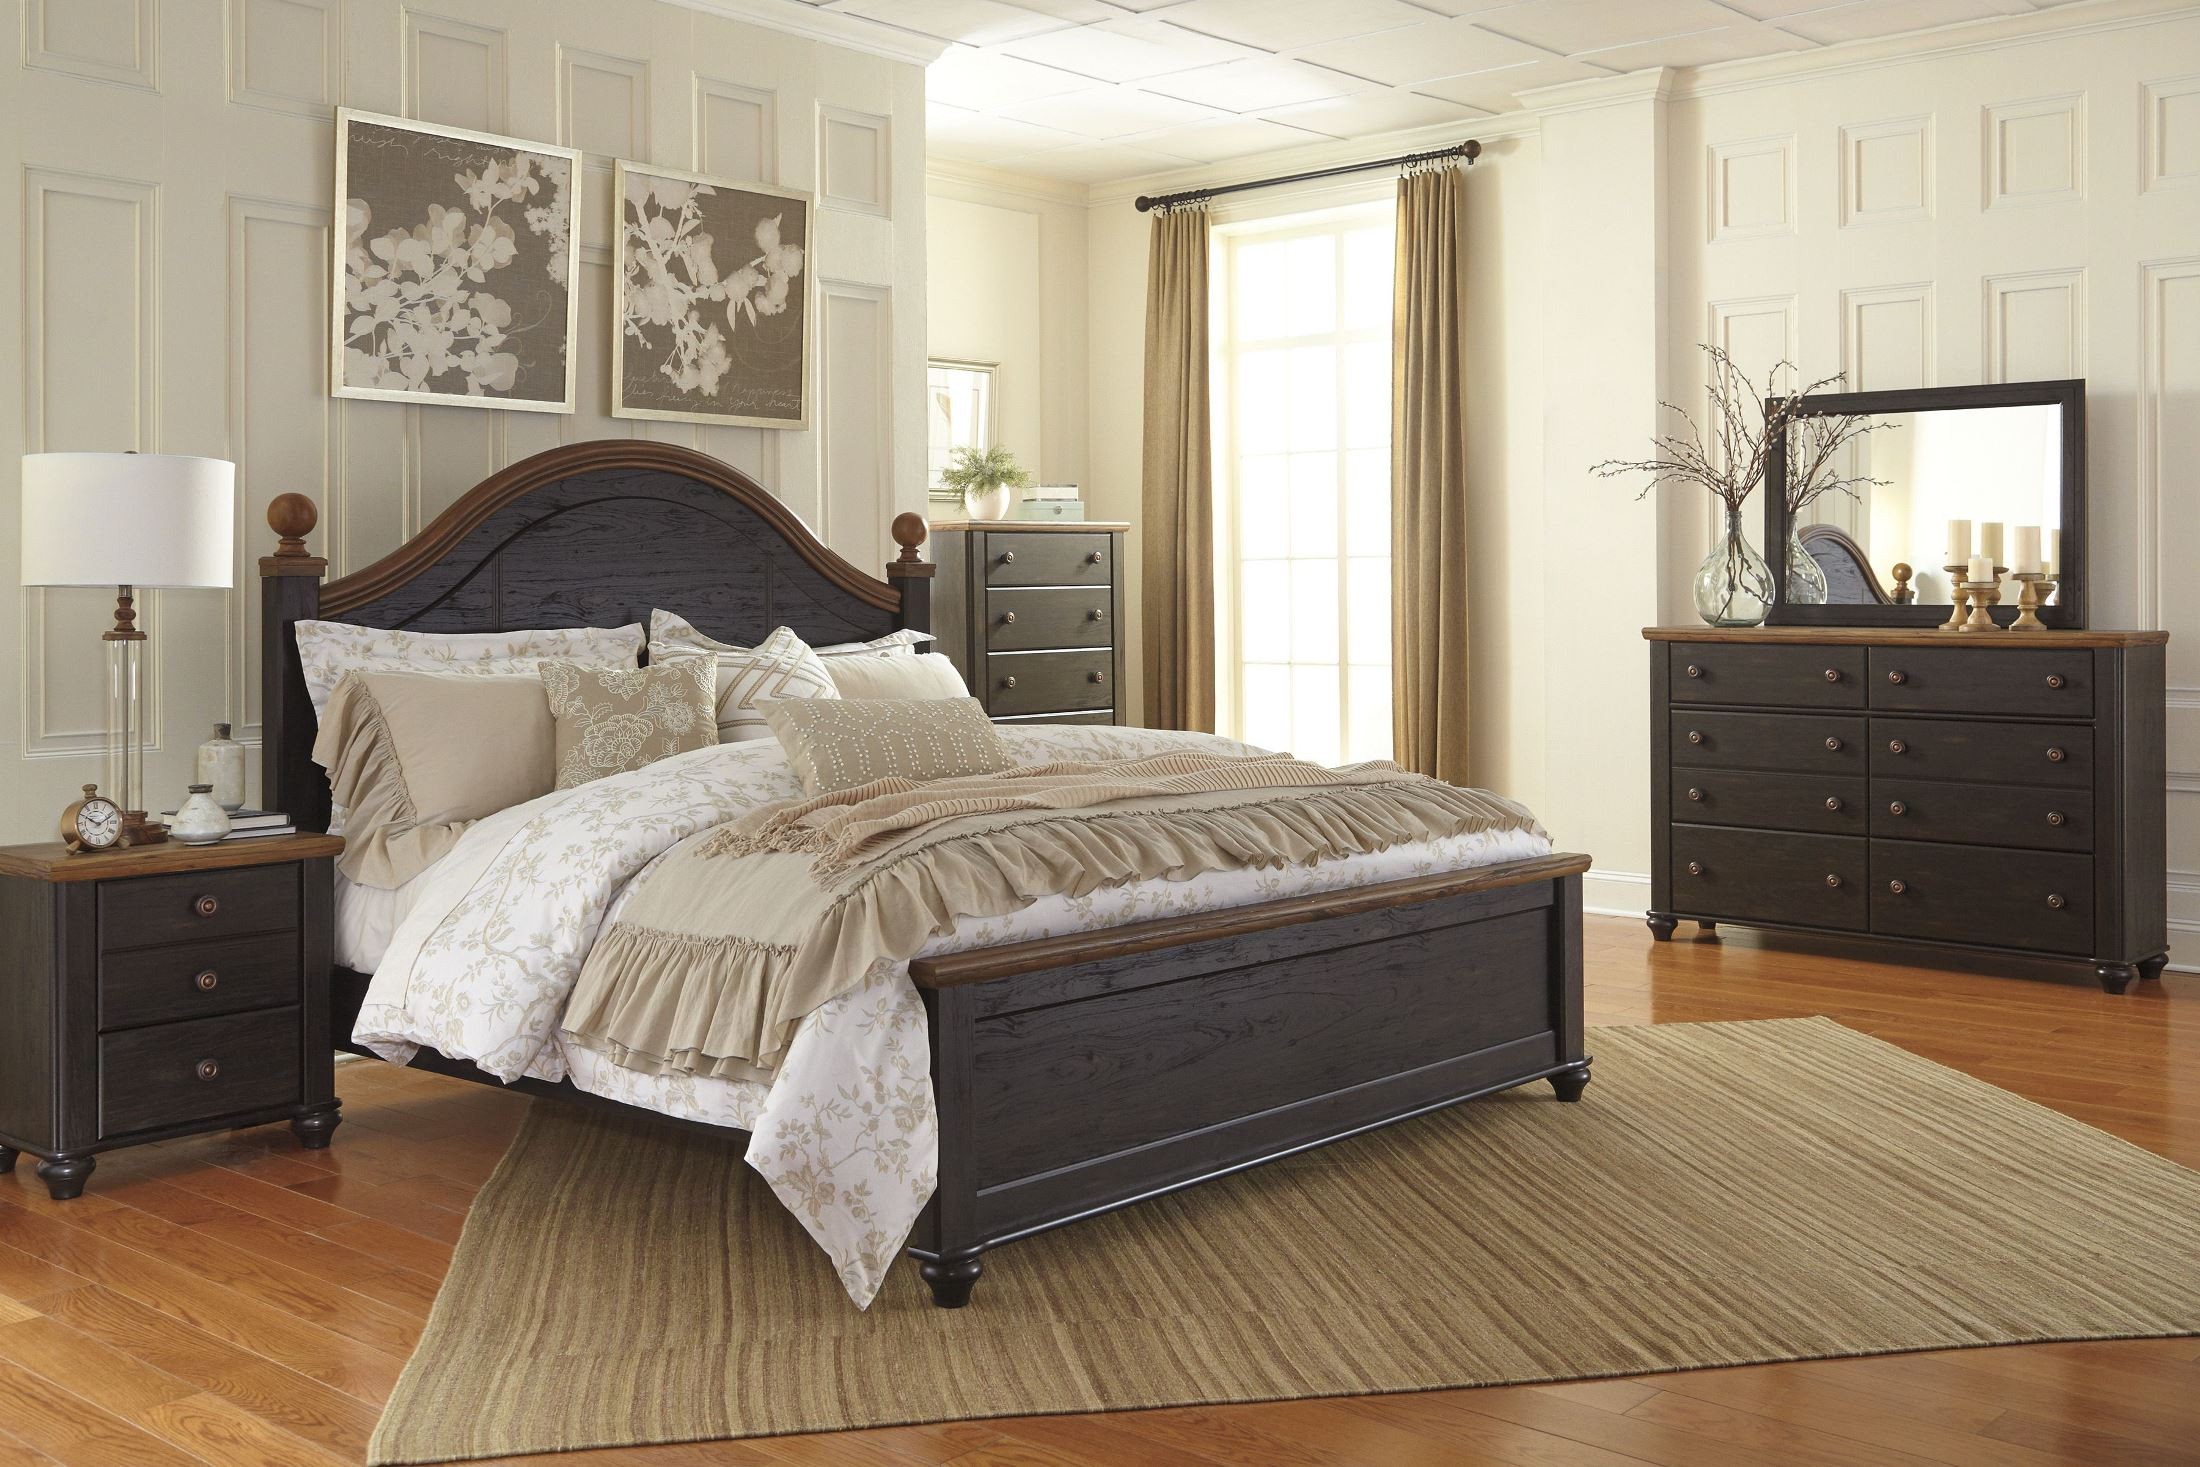 Maxington Black And Reddish Brown King Panel Bed From Ashley B220 68 56 95 Coleman Furniture